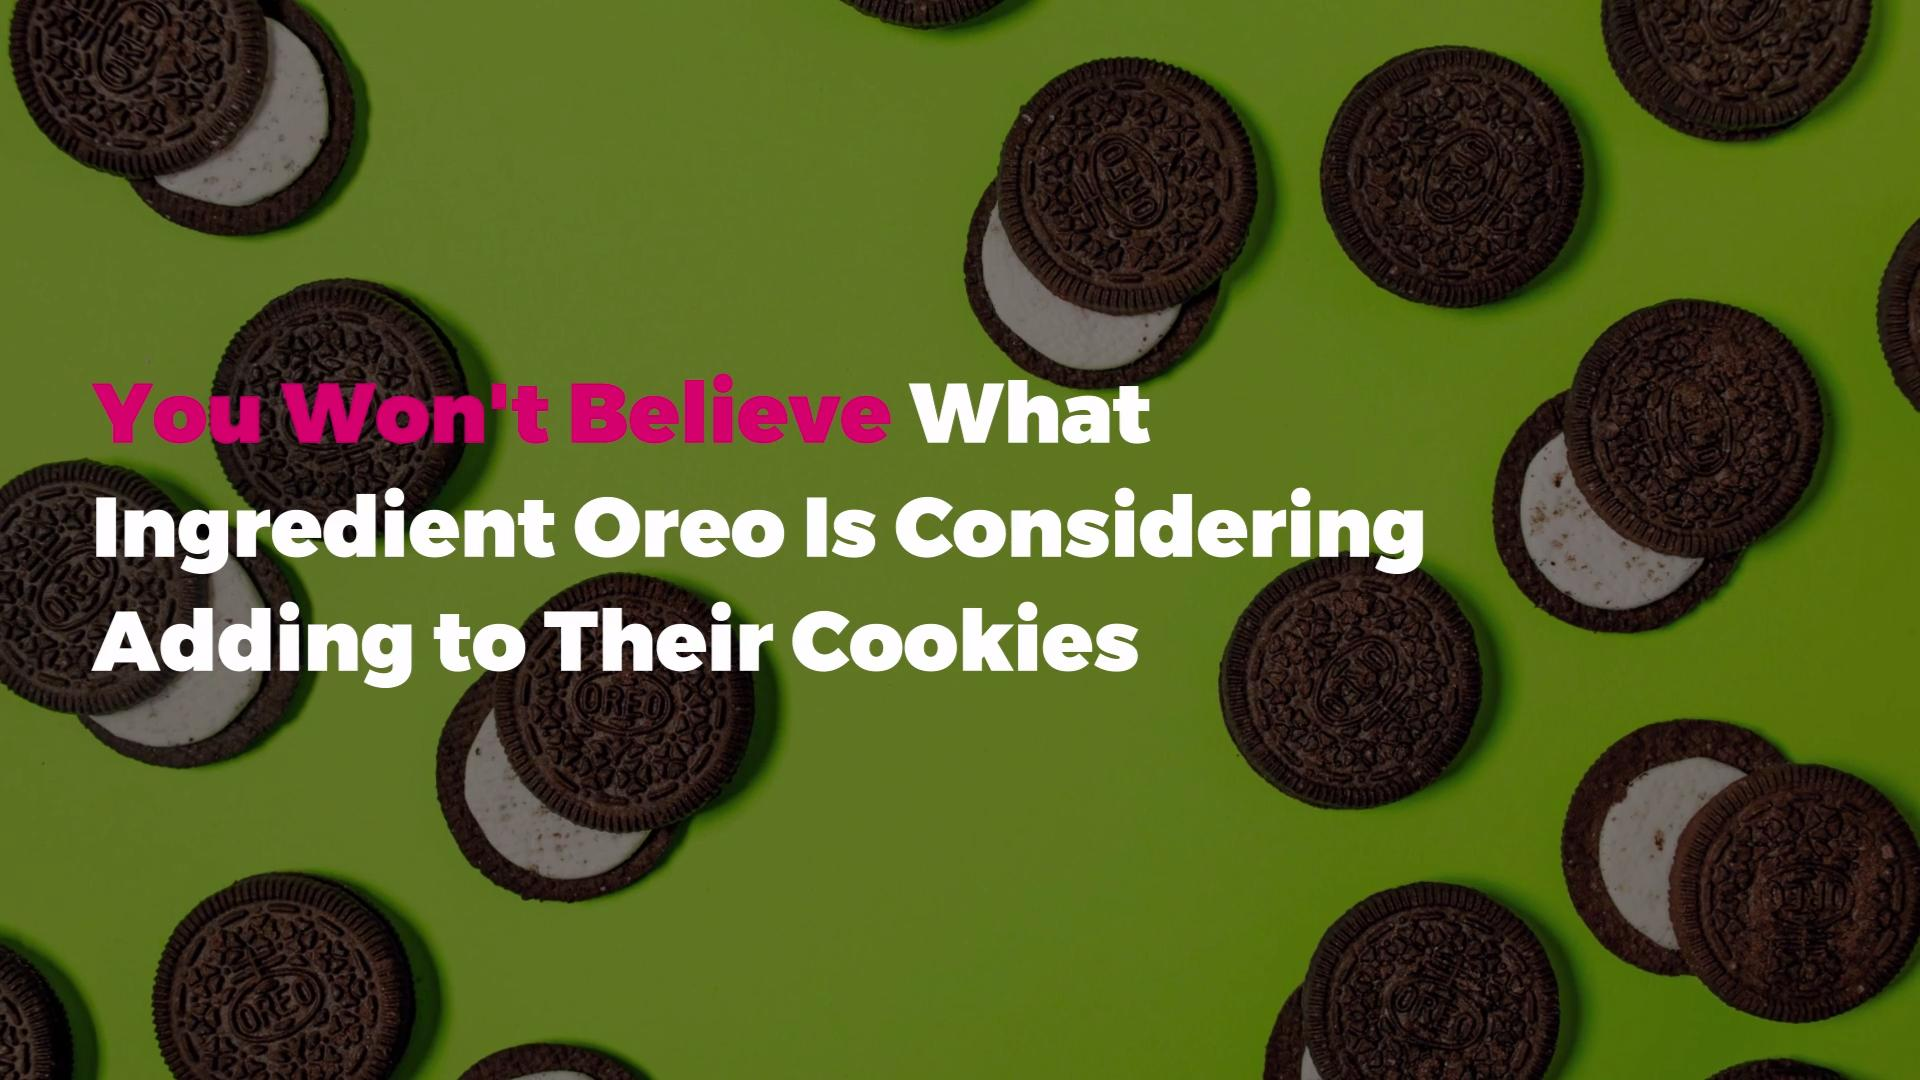 You Won't Believe What Ingredient Oreo Is Considering Adding to Their Cookies